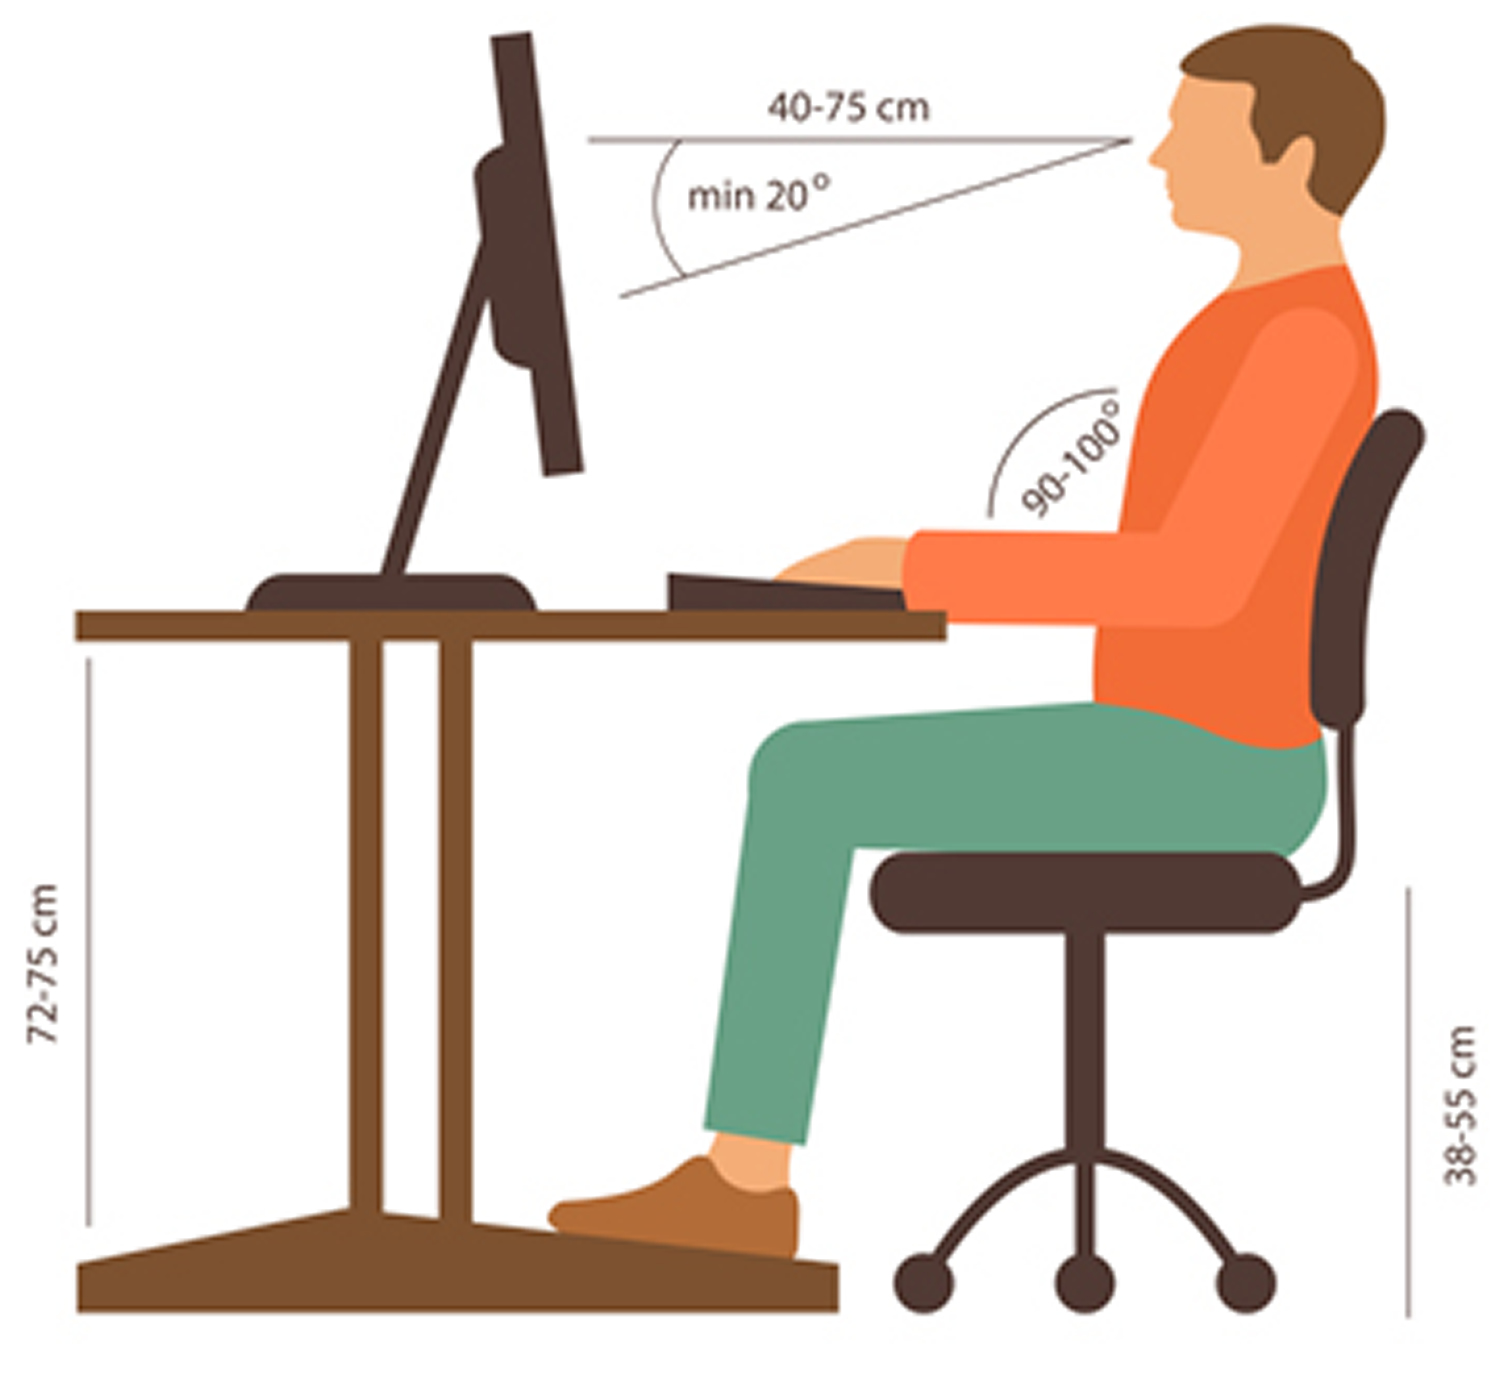 Good Posture for computer use